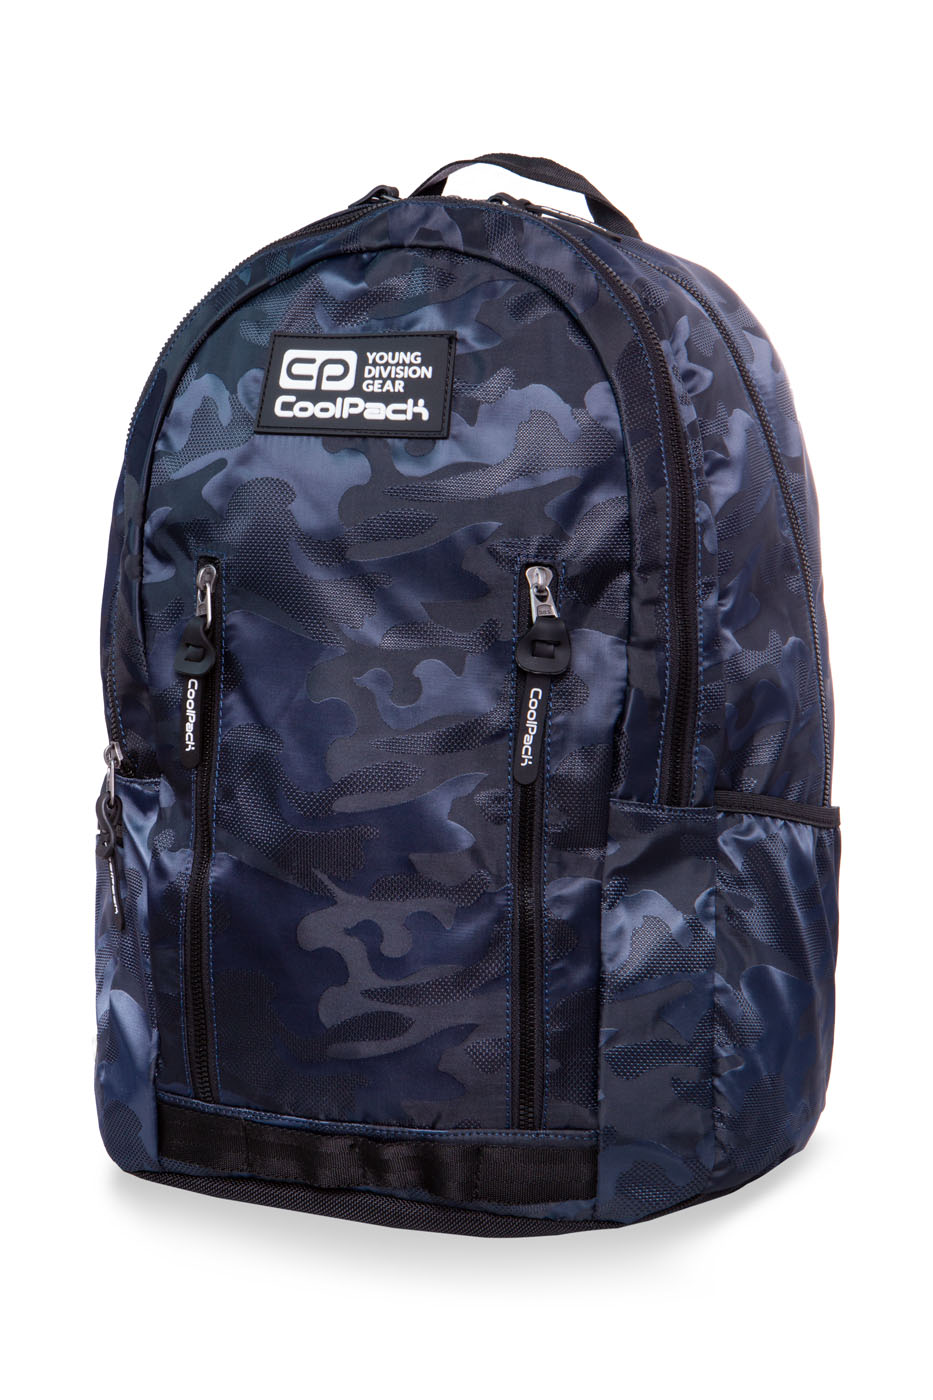 Coolpack - impact ii - youth backpack - army navy